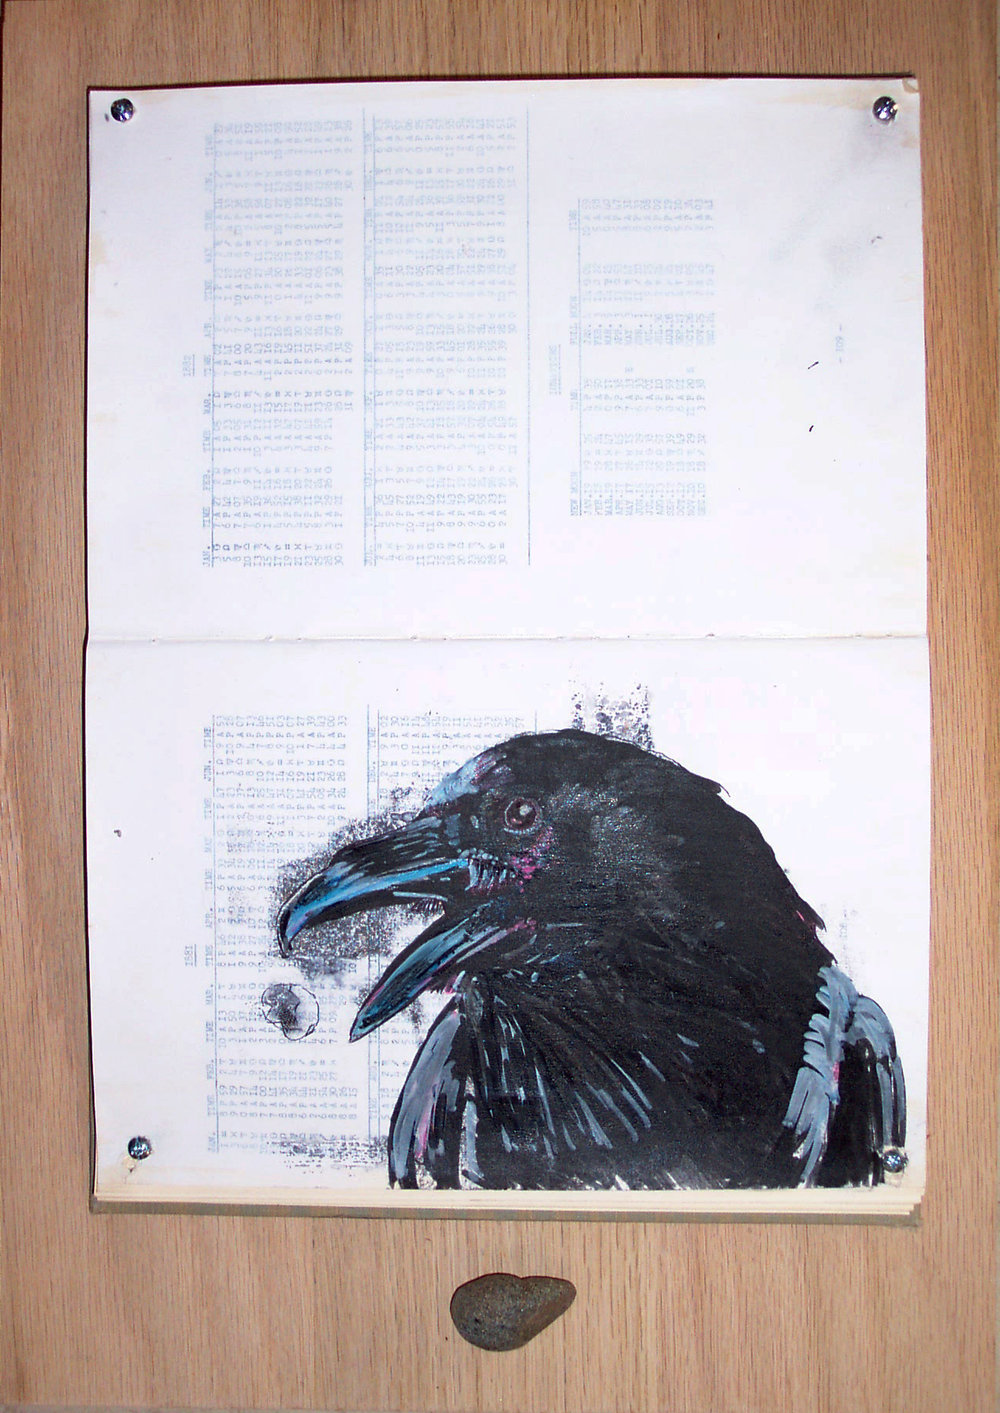 As the Crow Flies (pt. 3). 2008. Altered book, transfer print, oil paint illustration, gesso, screws, oak. -